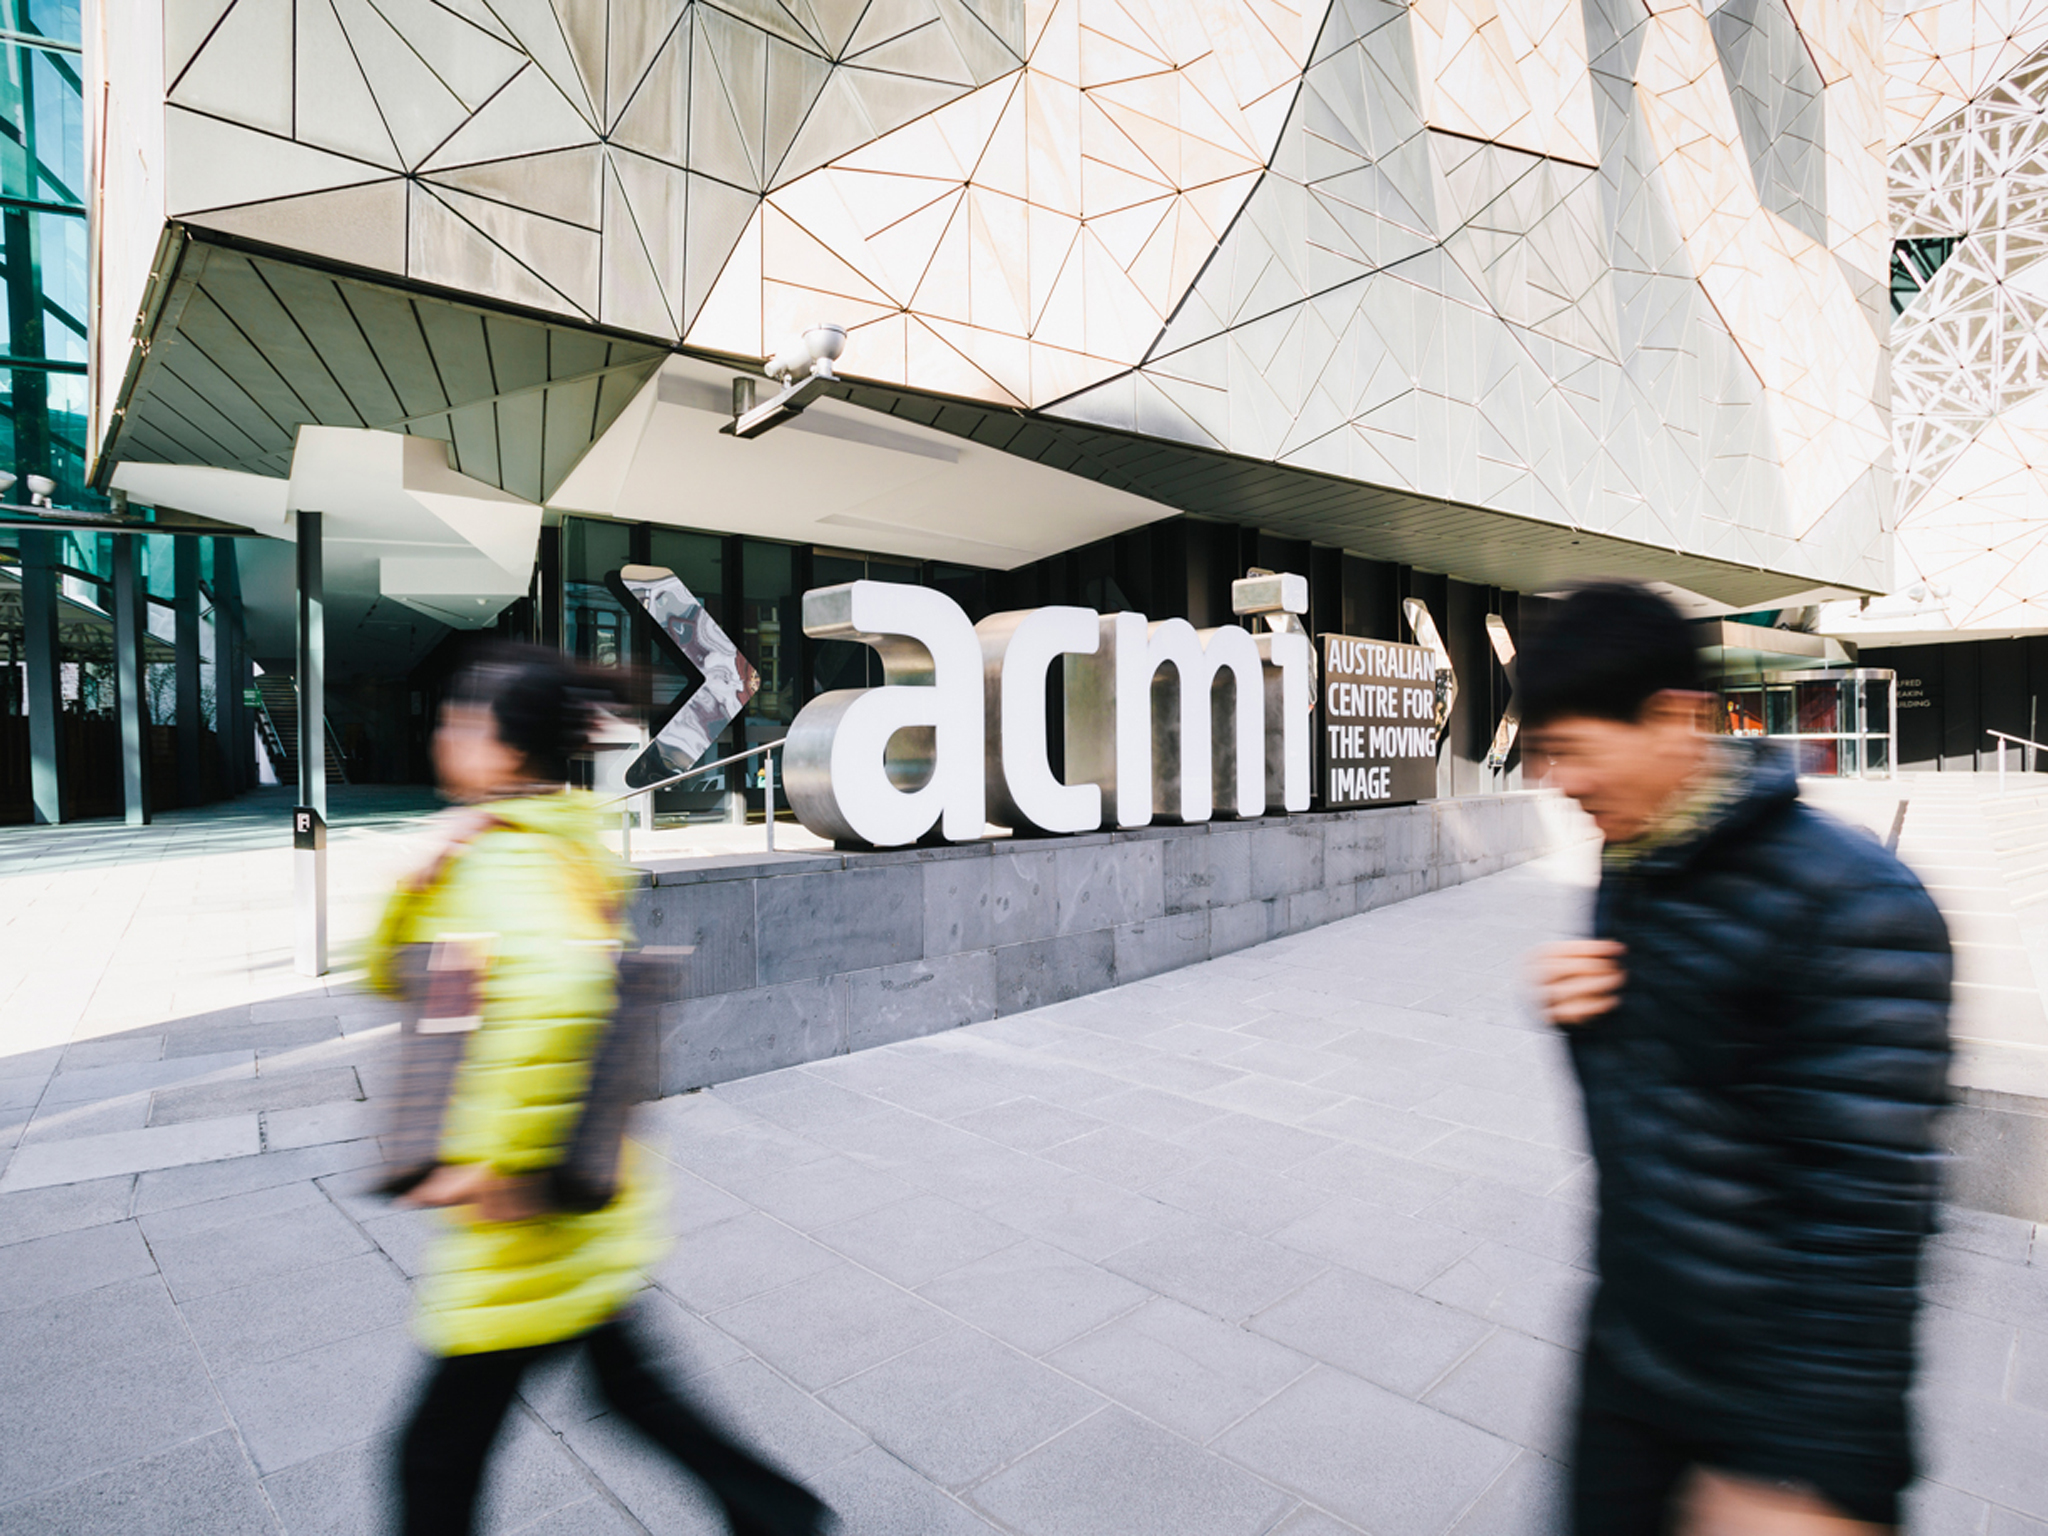 Australian Centre for the Moving Image 2016 exterior 01 feat signage courtesy ACMI 2016 photographer credit Renee Stamatis